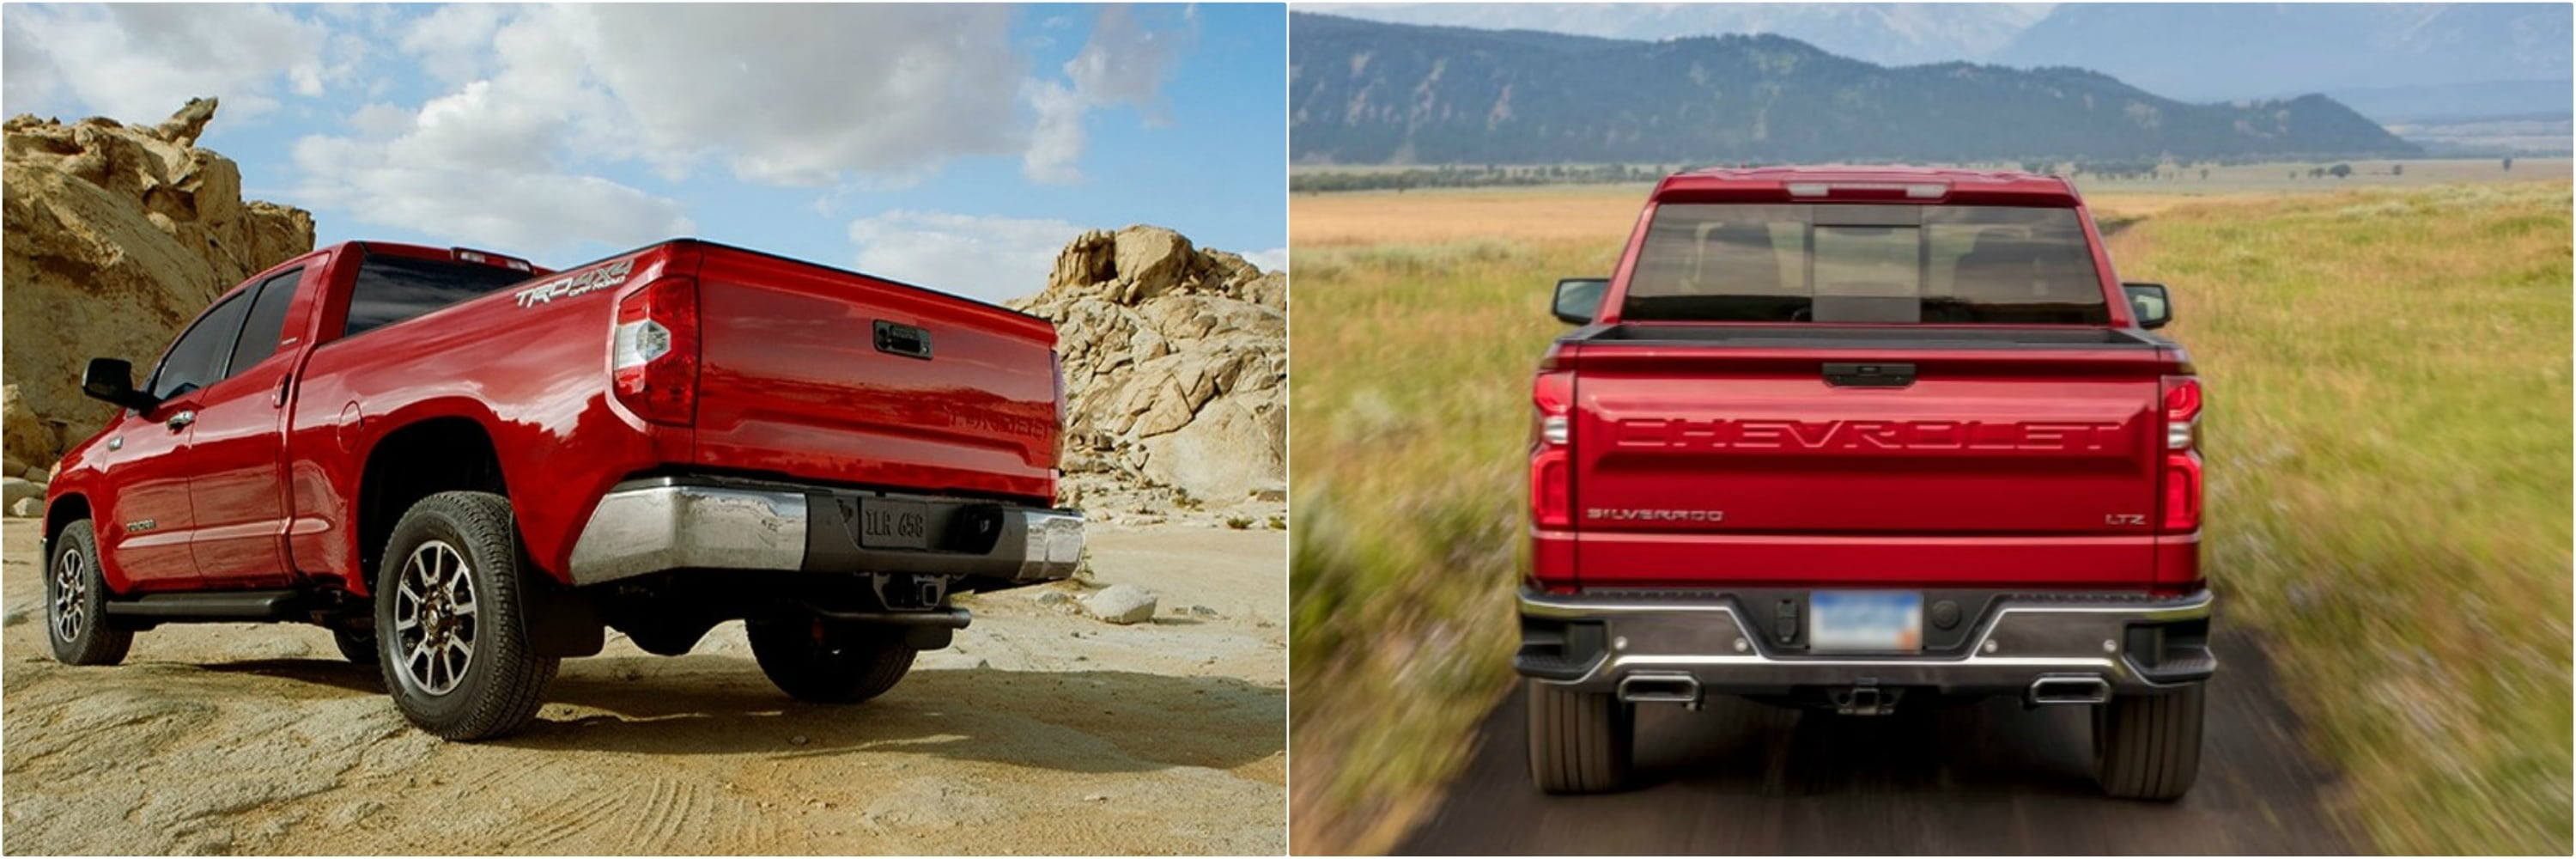 back views of a 2018 Toyota Tundra and Chevy Silverado